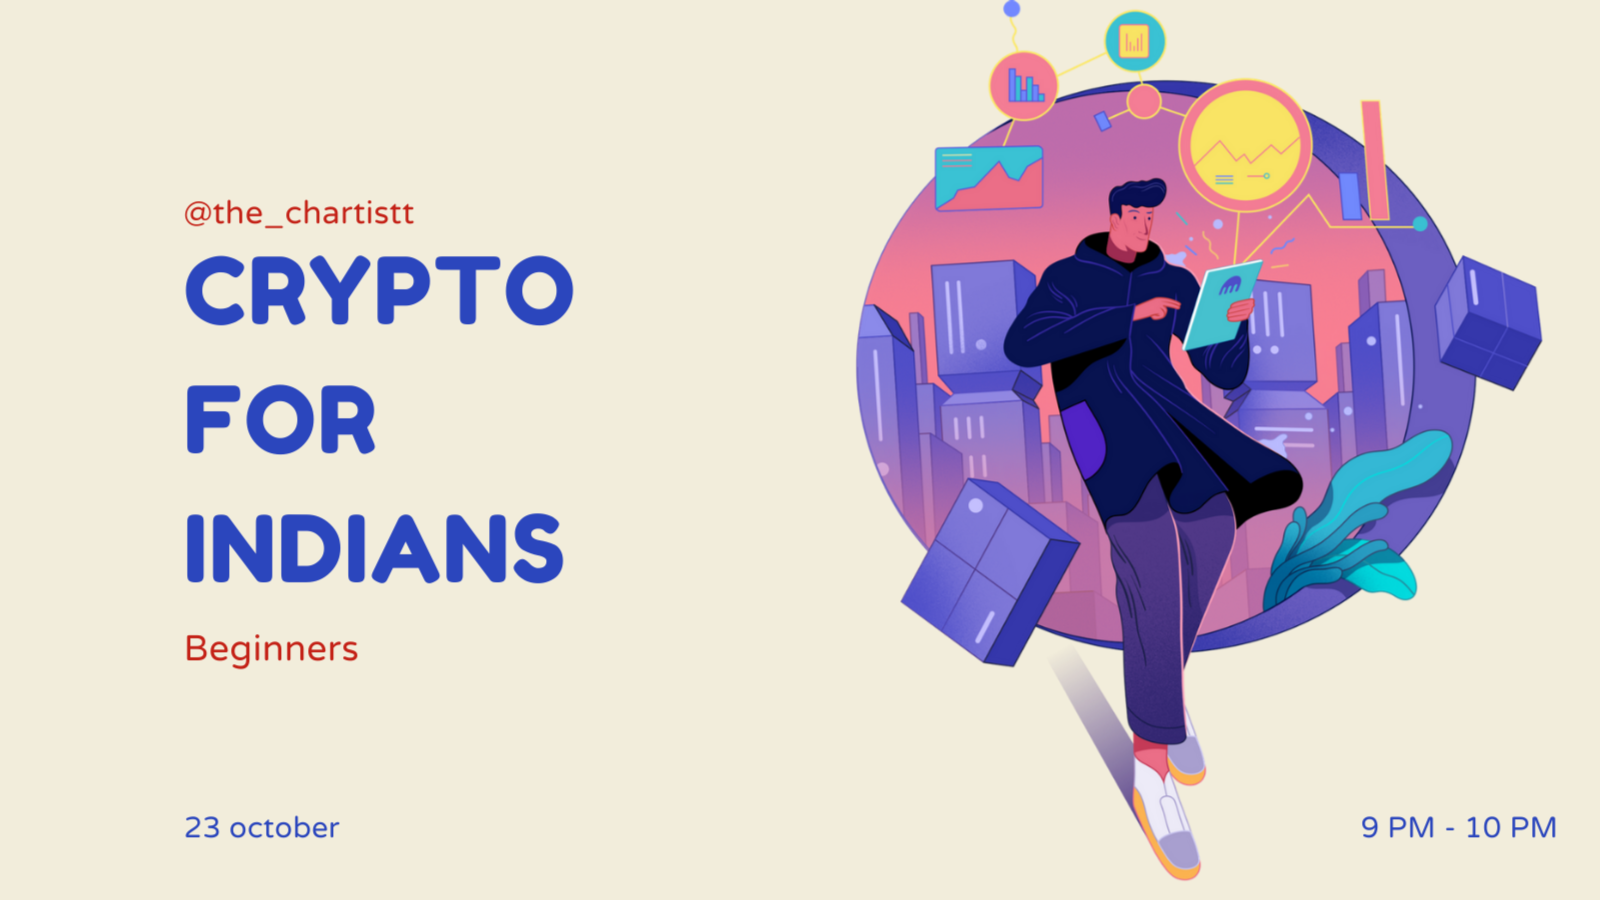 Crypto for Indians (Beginners)